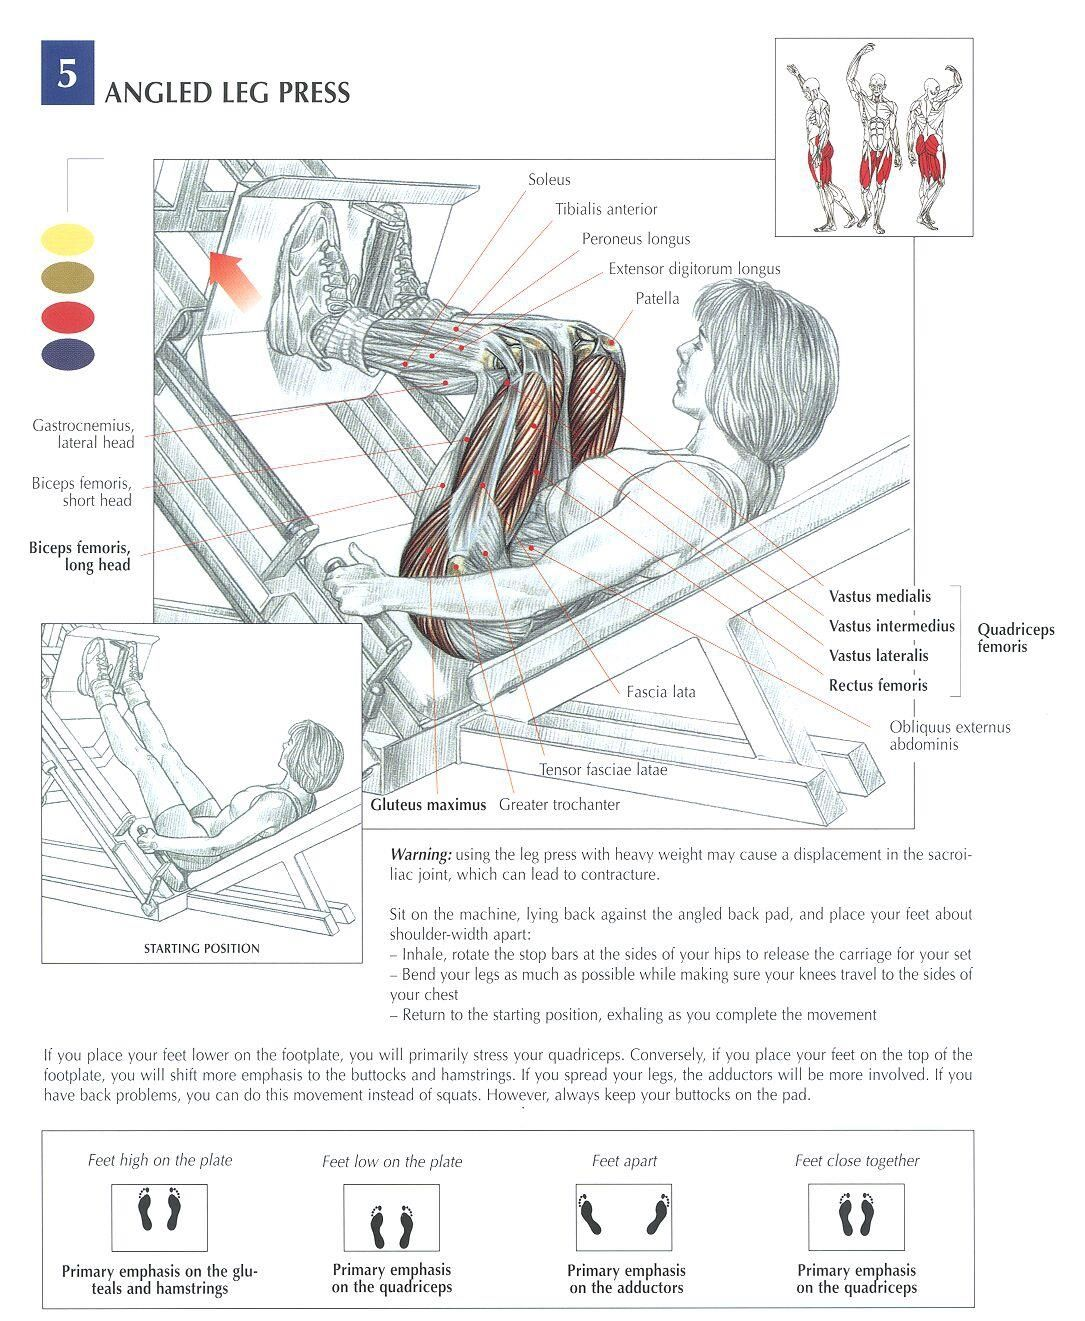 Angled Leg Press Health Fitness Exercises Diagrams